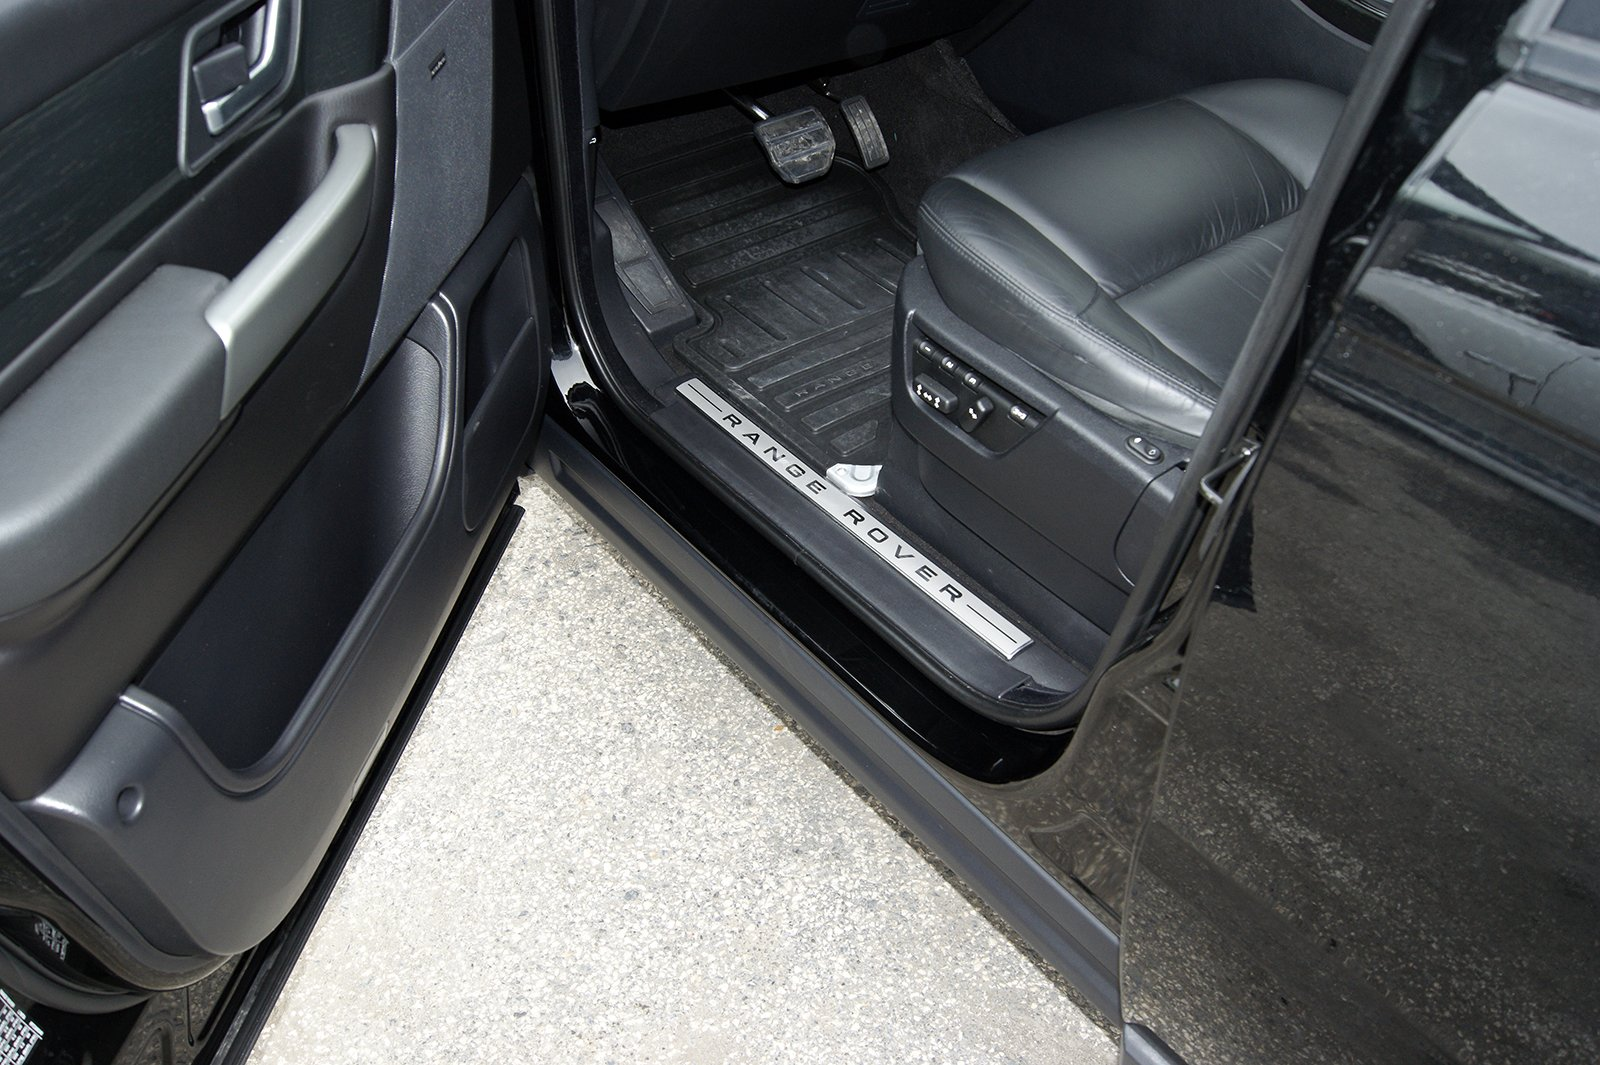 BARMECA Range Rover Sport 2005-2013 Door Sill Covers Set of 4 by BARMECA (Image #2)